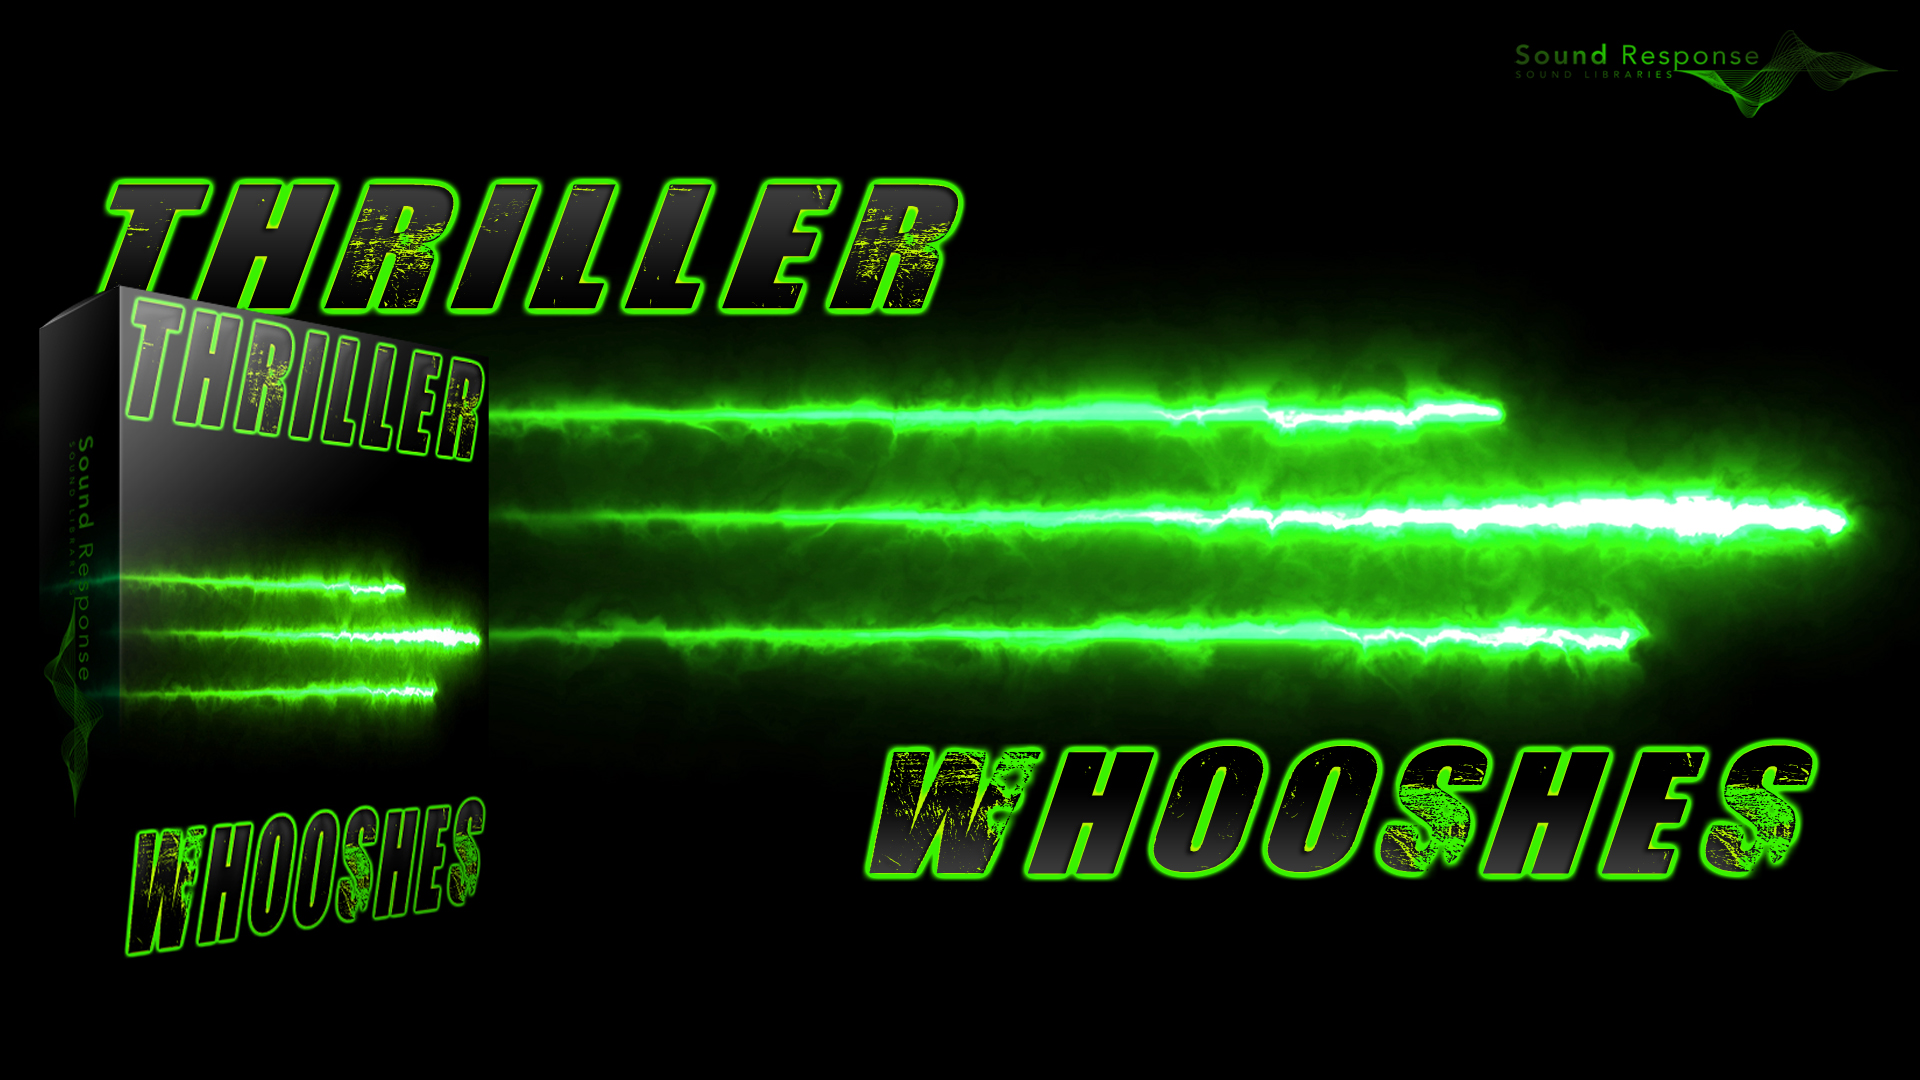 Thriller Whooshes & Transitions by Sound Response in Sound Effects